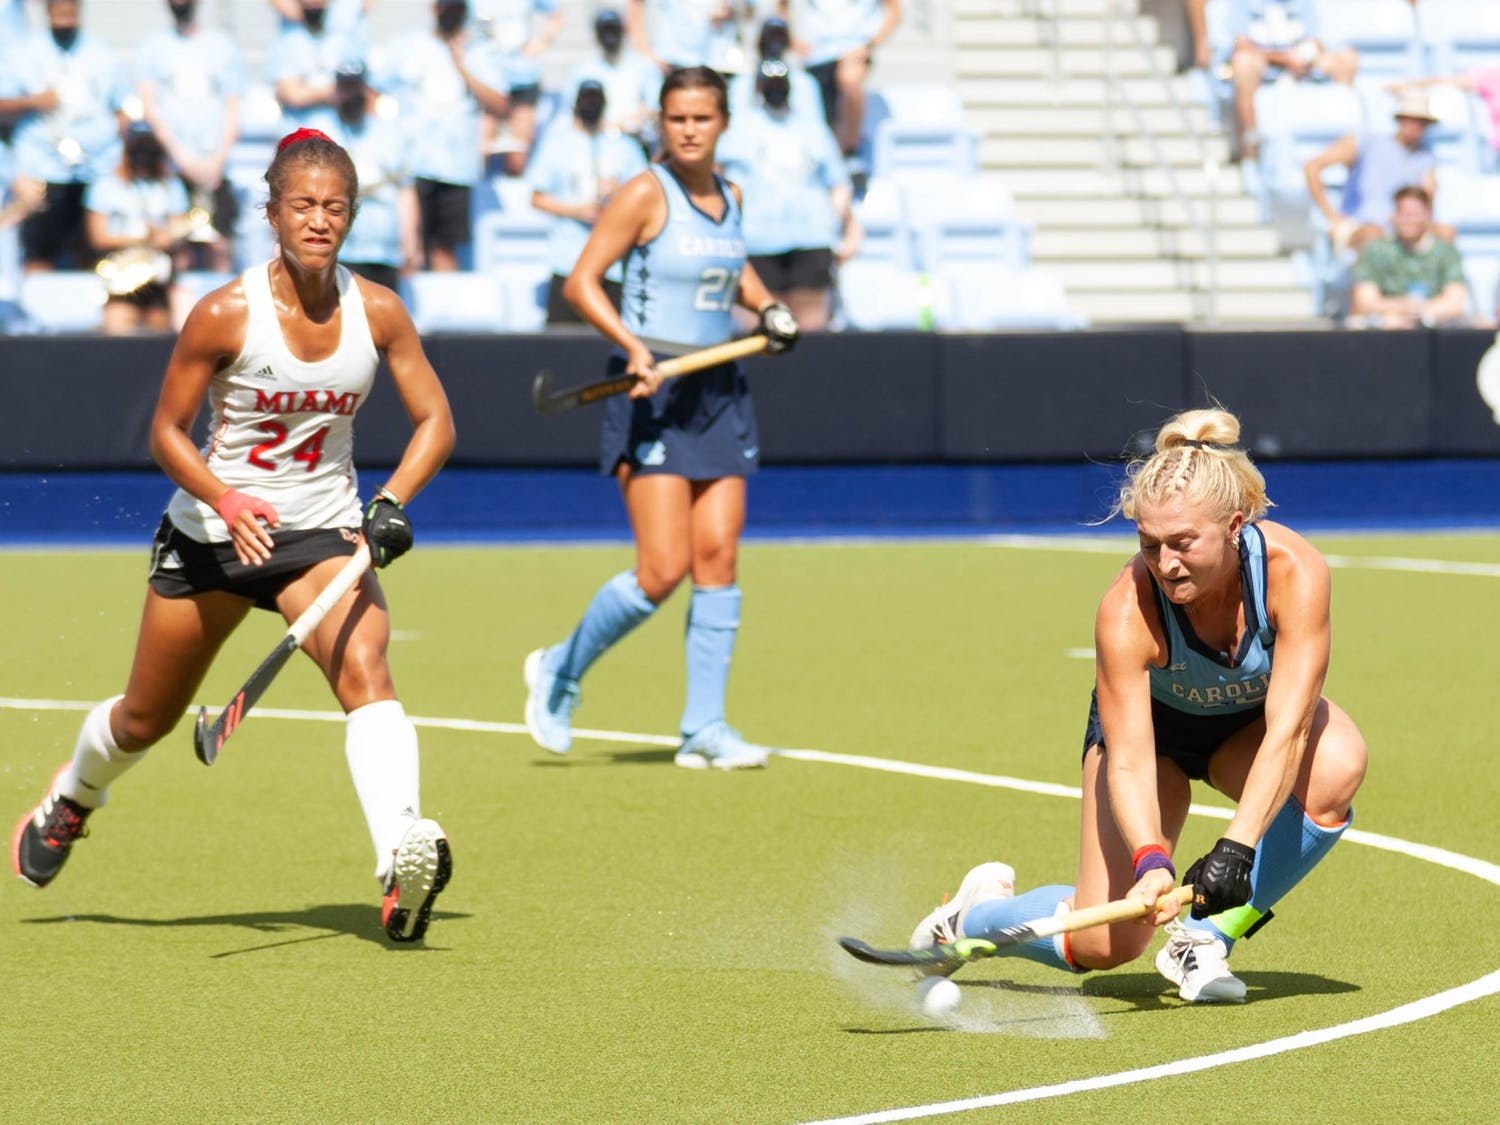 UNC junior midfielder Paityn Wirth (10) gains possession of the ball during the field hockey game against the Miami Redhawks at Karen Shelton Stadium on Sept. 19, 2021. The Tar Heels defeated the Redhawks 7-2.